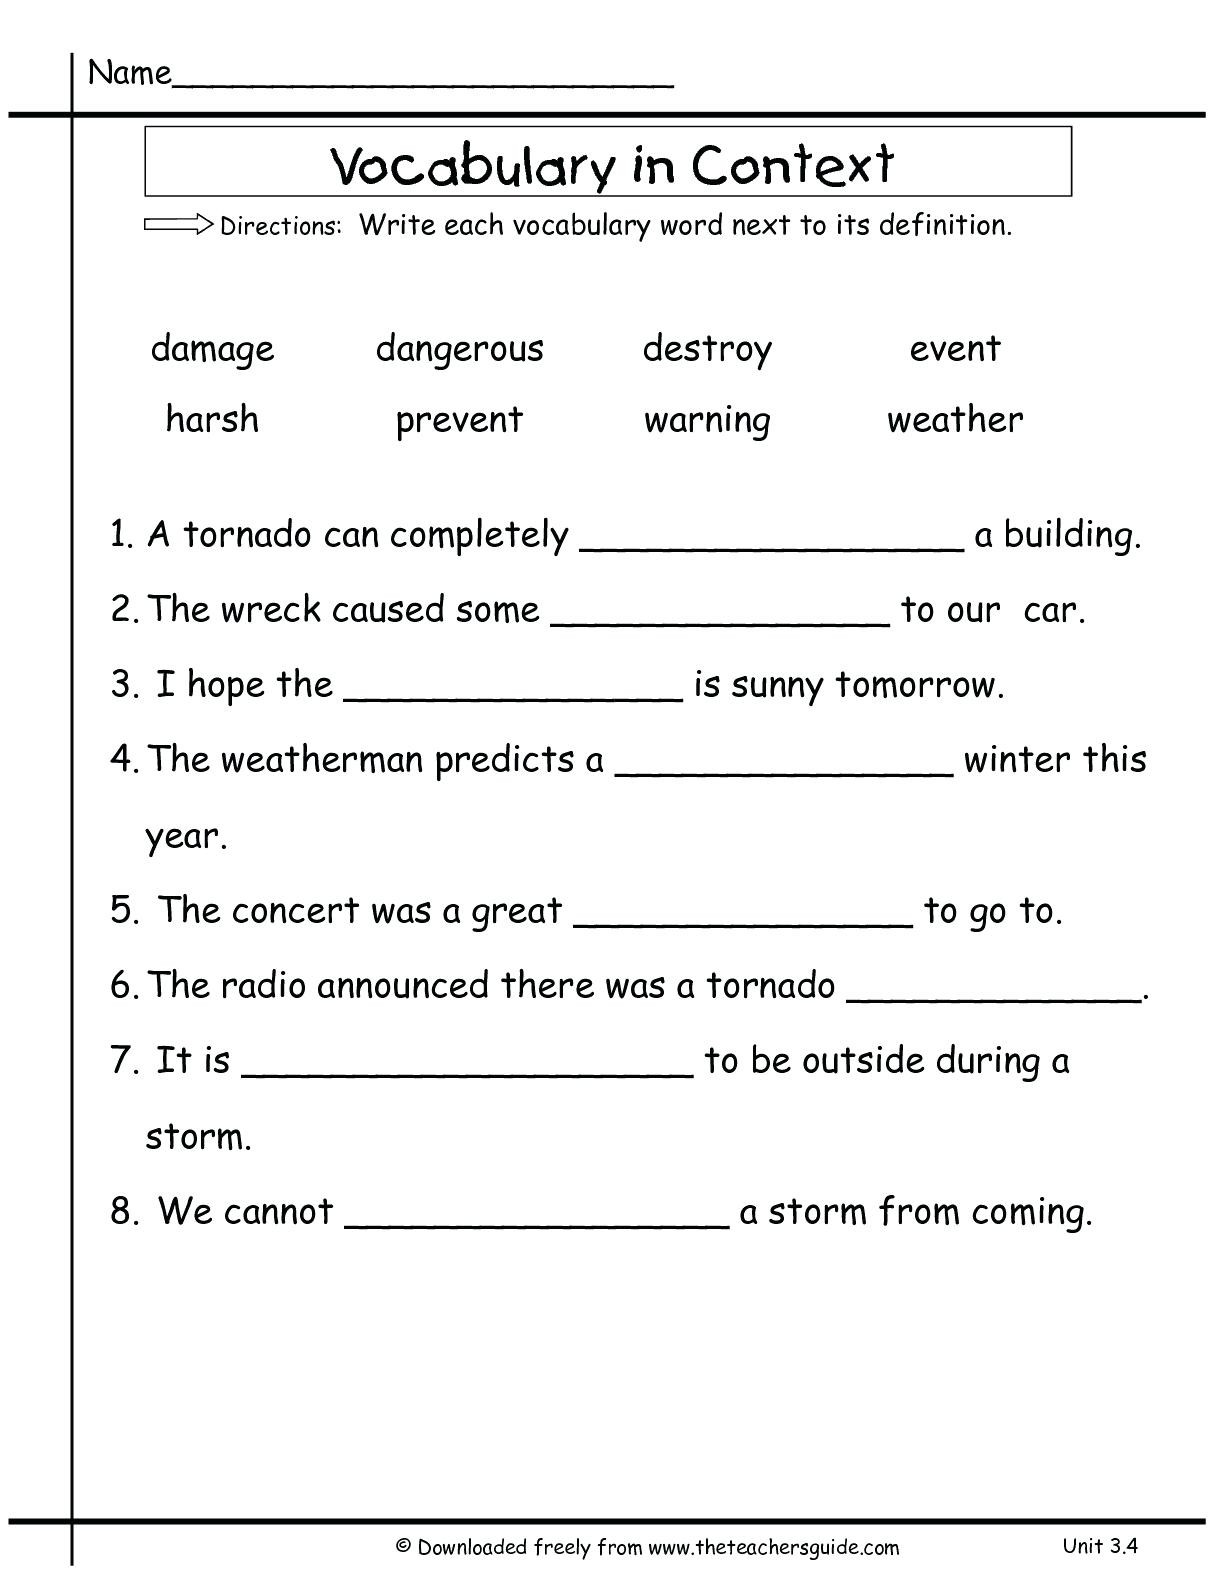 3d Shapes Worksheets 2nd Grade 3rd Grade Vocabulary Worksheets for Educations 2nd Two Step